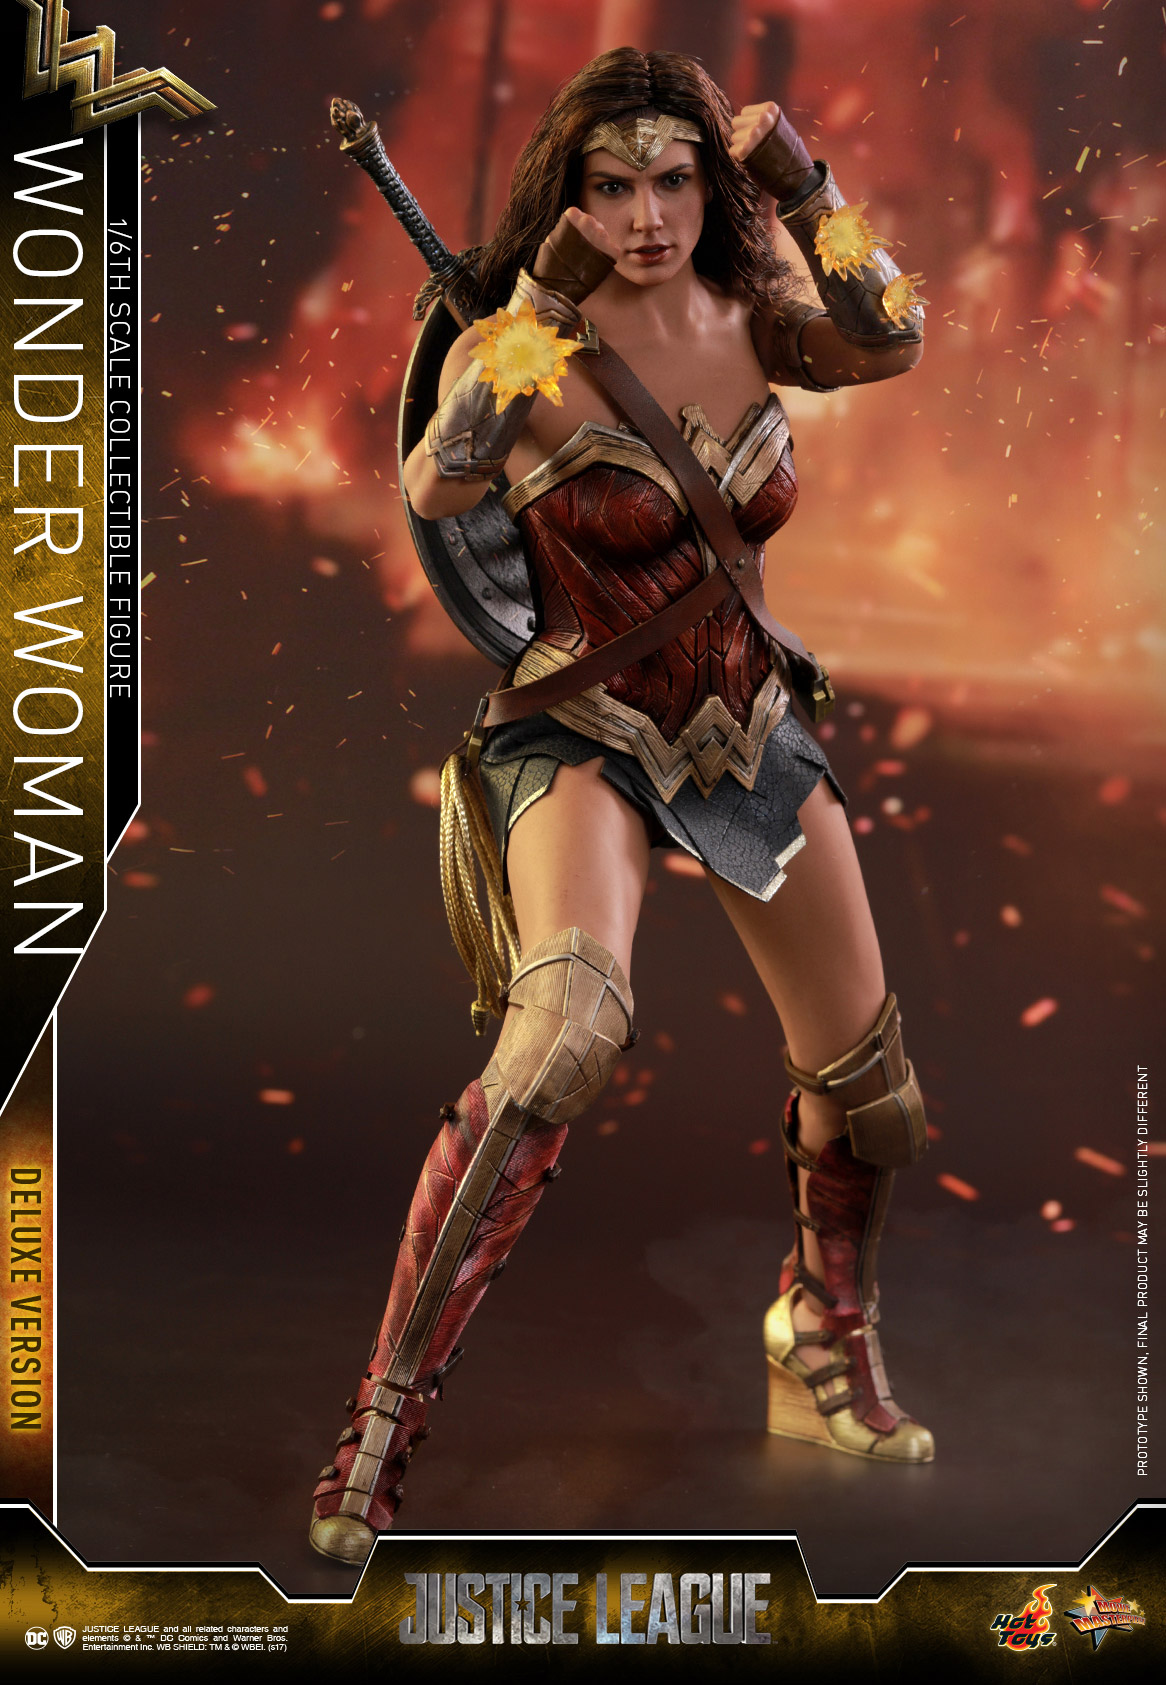 Hot-Toys-Justice-League-Wonder-Woman-collectible-figure-Deluxe_PR-9.jpg